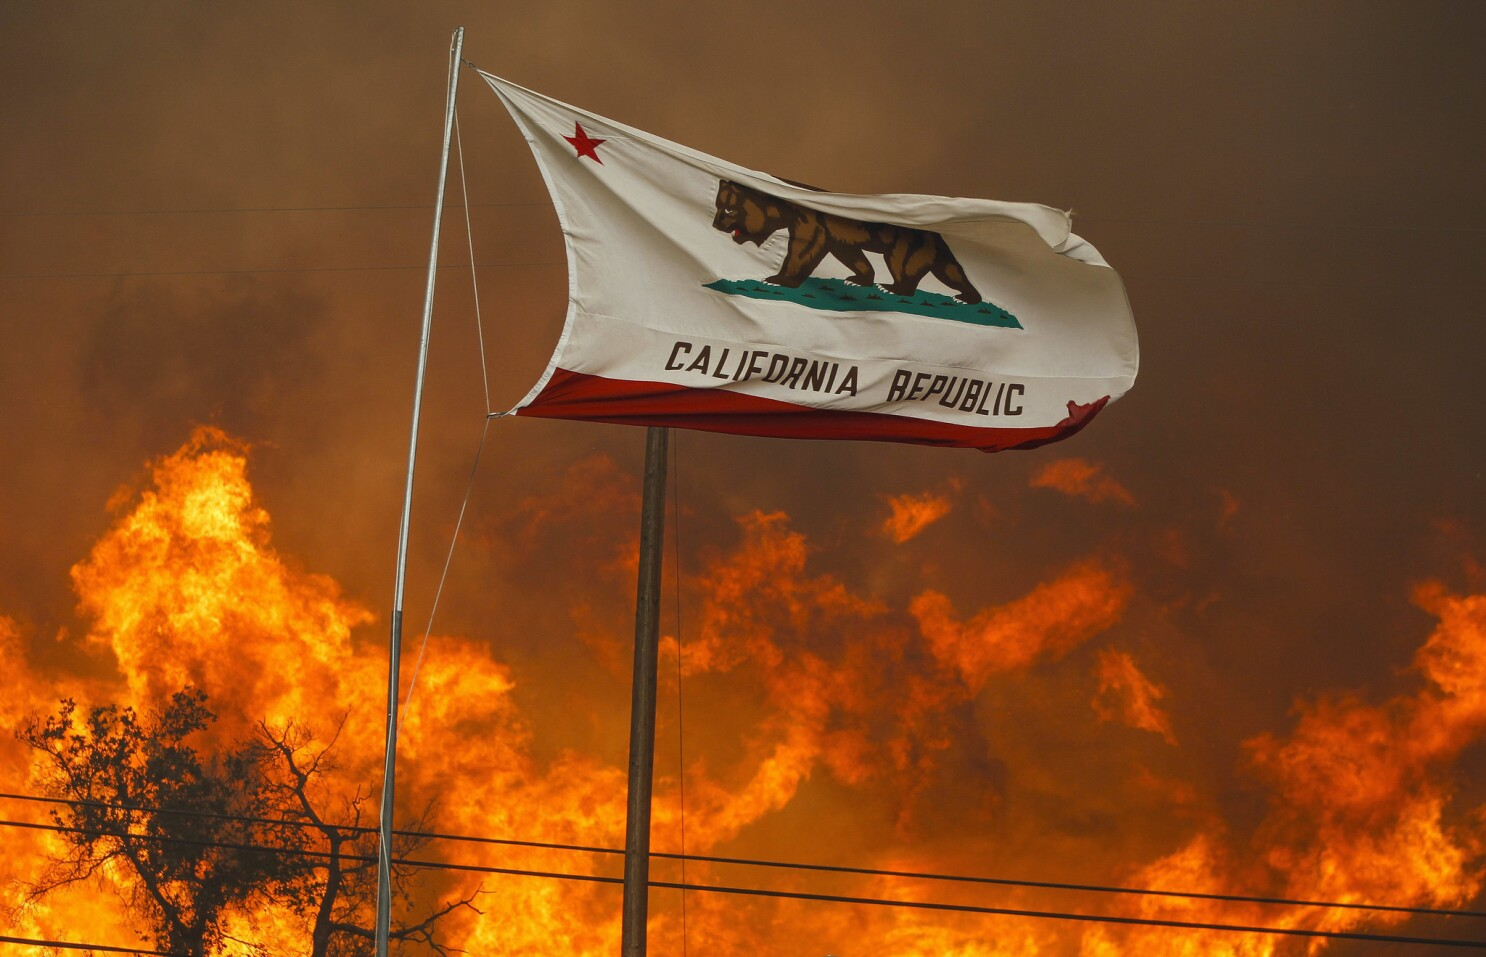 As the Santa Ana winds touch down this fall, wildfire season may begin to shift to winter in San Diego